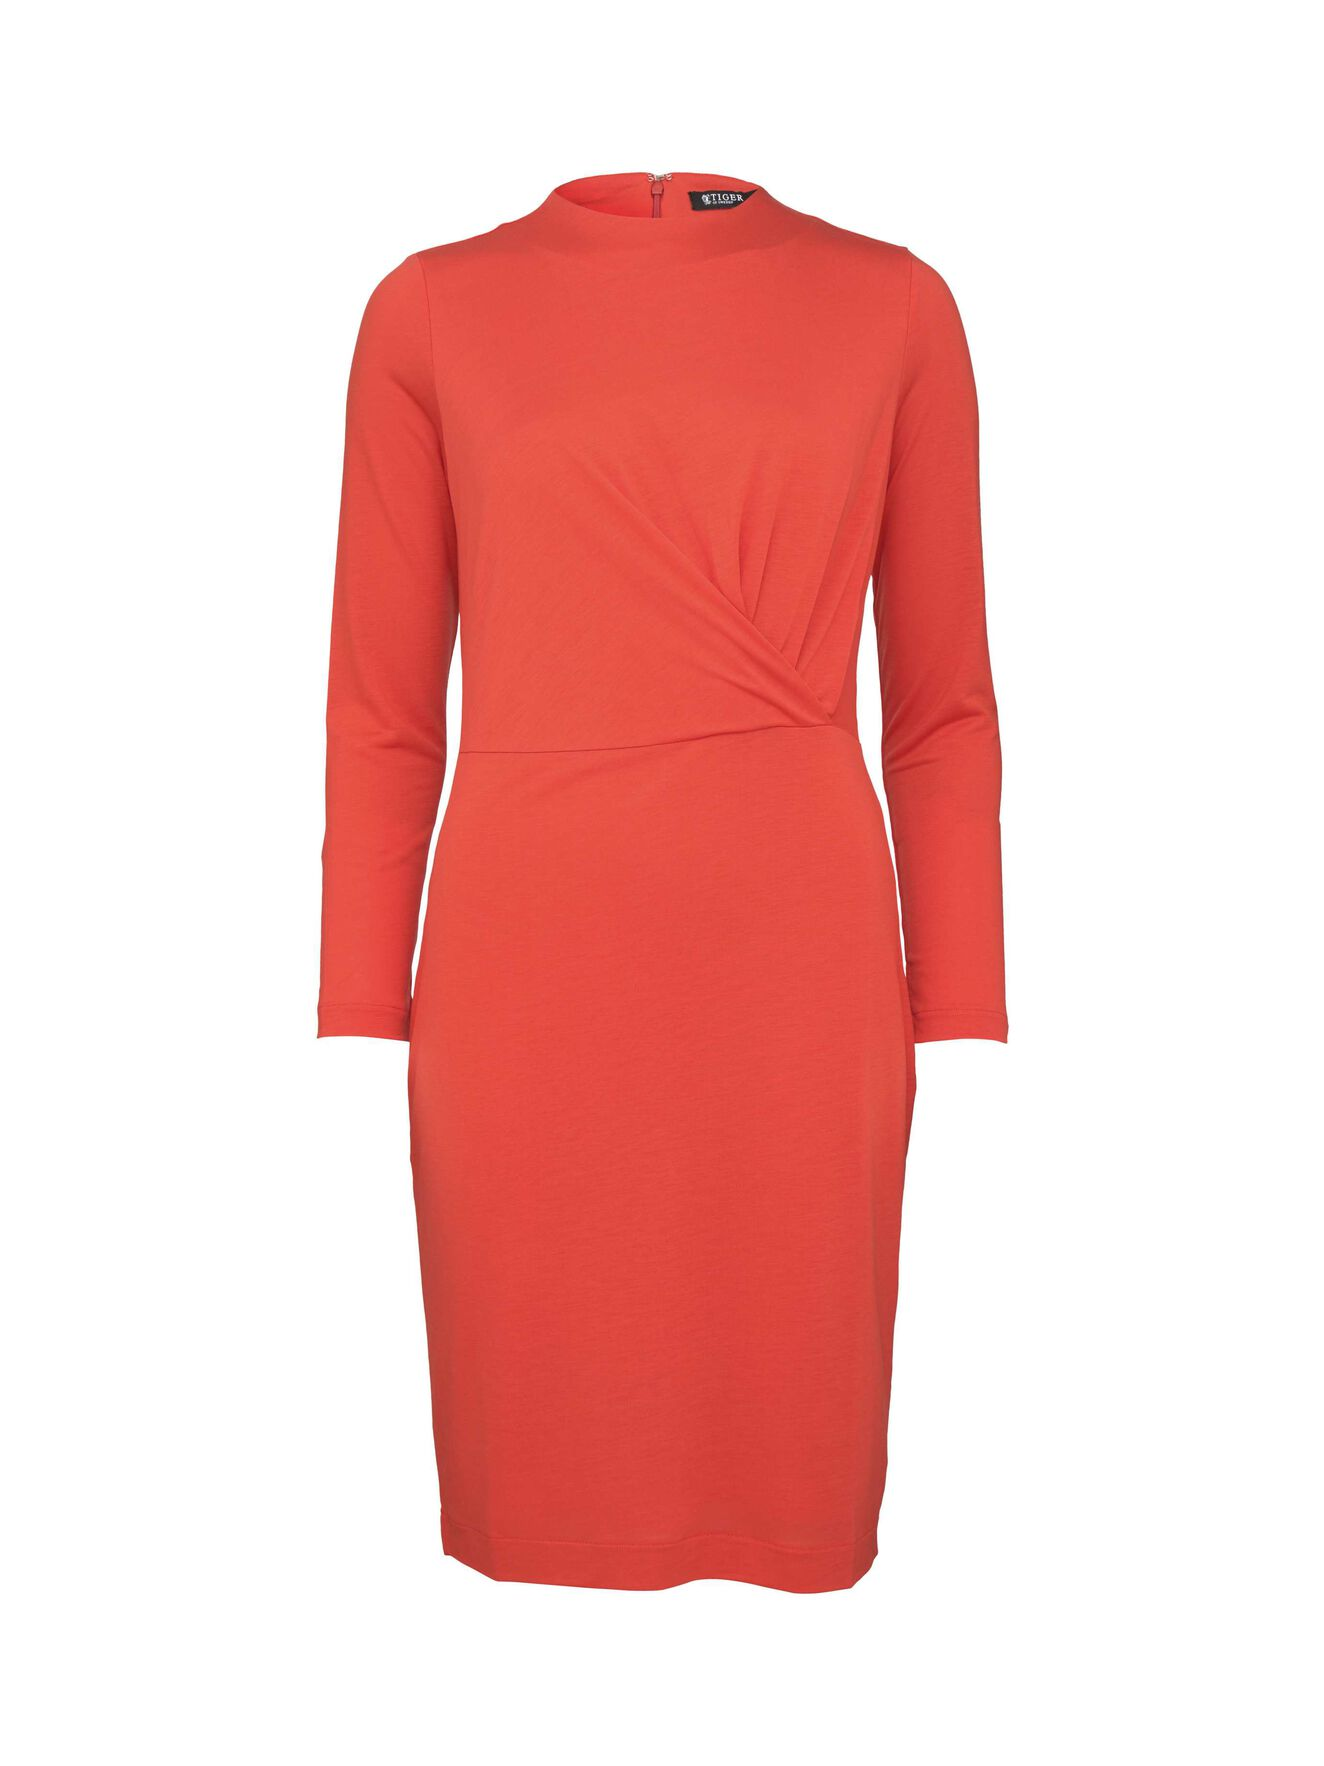 Dafne Dress in Flame Red from Tiger of Sweden